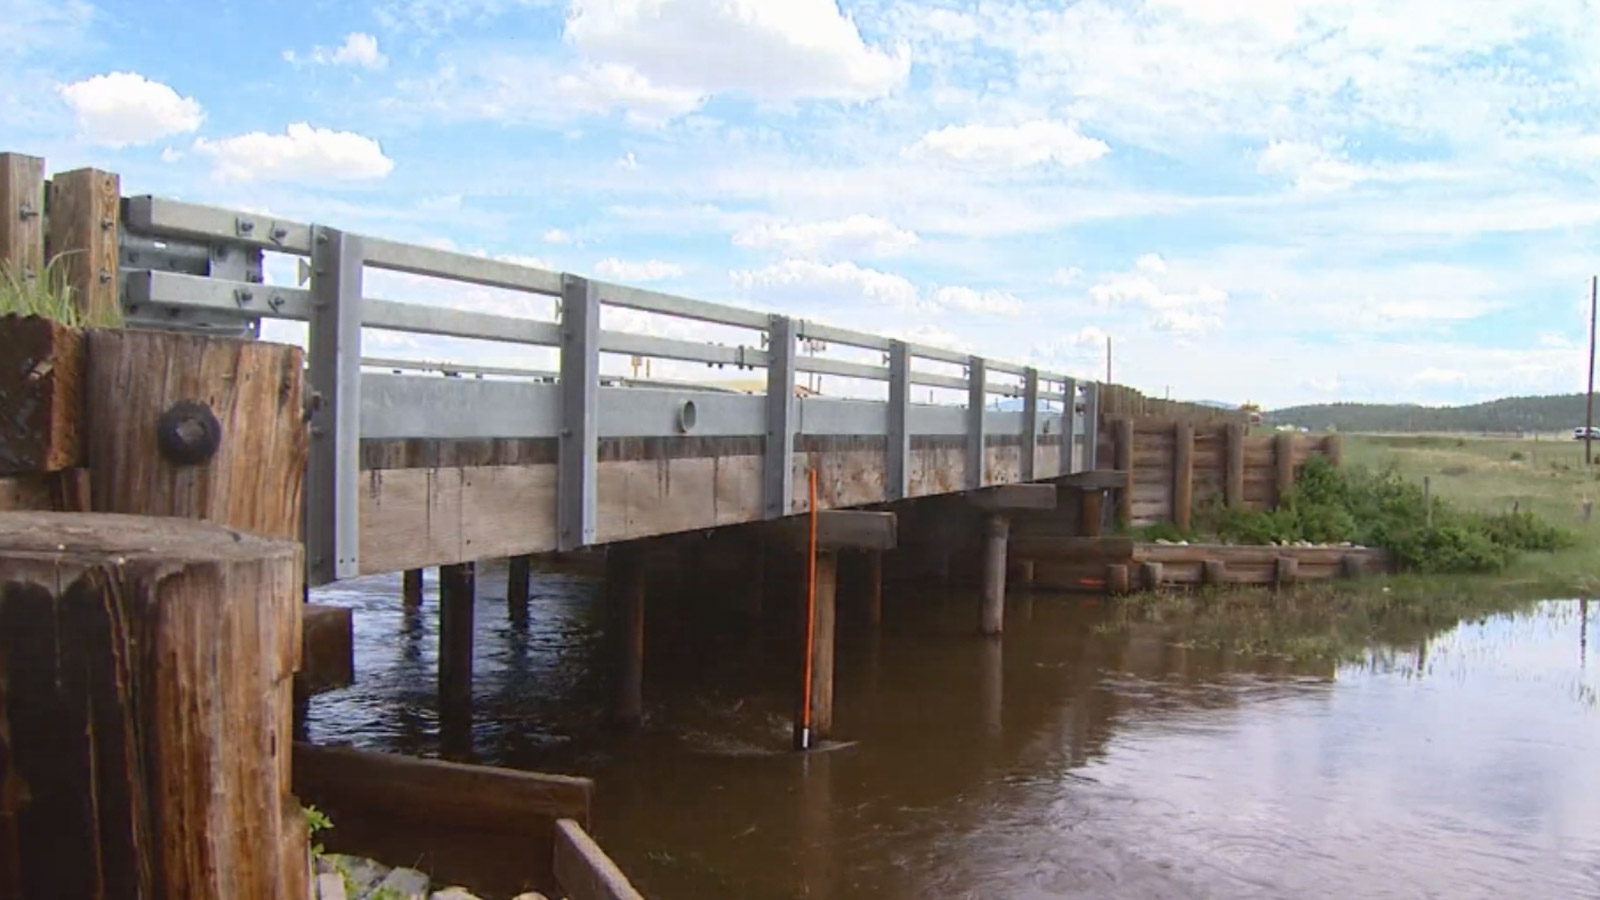 A bridge along Highway 285 over the South Platte River (credit: CBS)